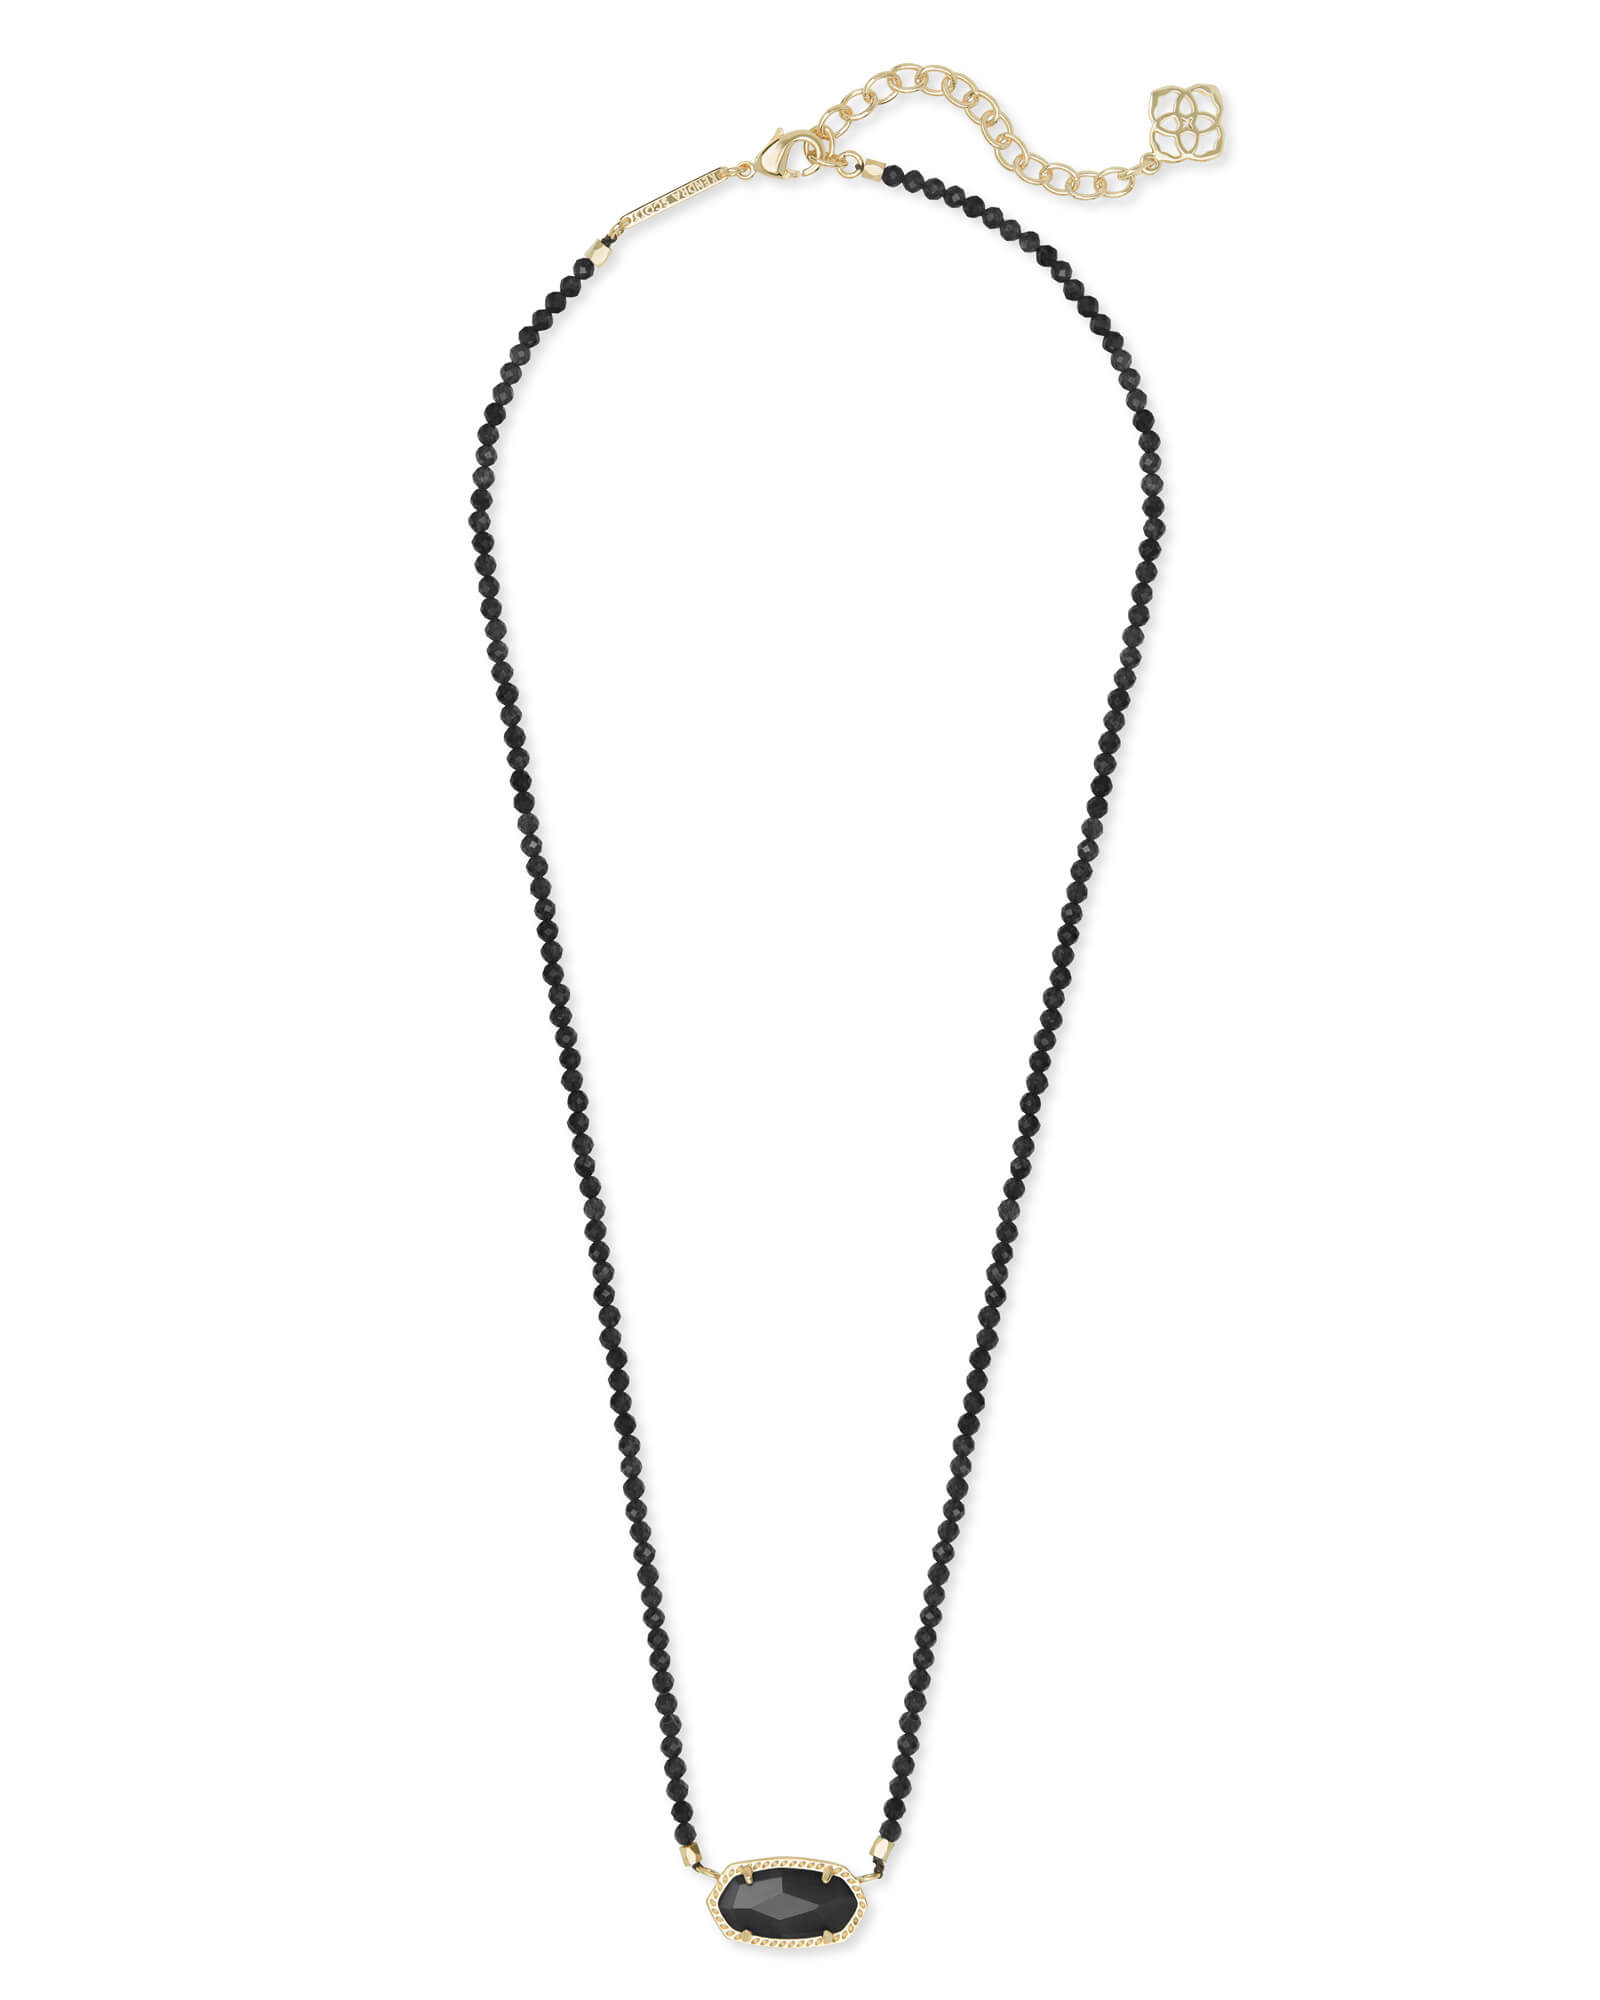 Elisa Gold Beaded Pendant Necklace | Kendra Scott Pertaining To 2020 Beaded Chain Necklaces (View 13 of 25)